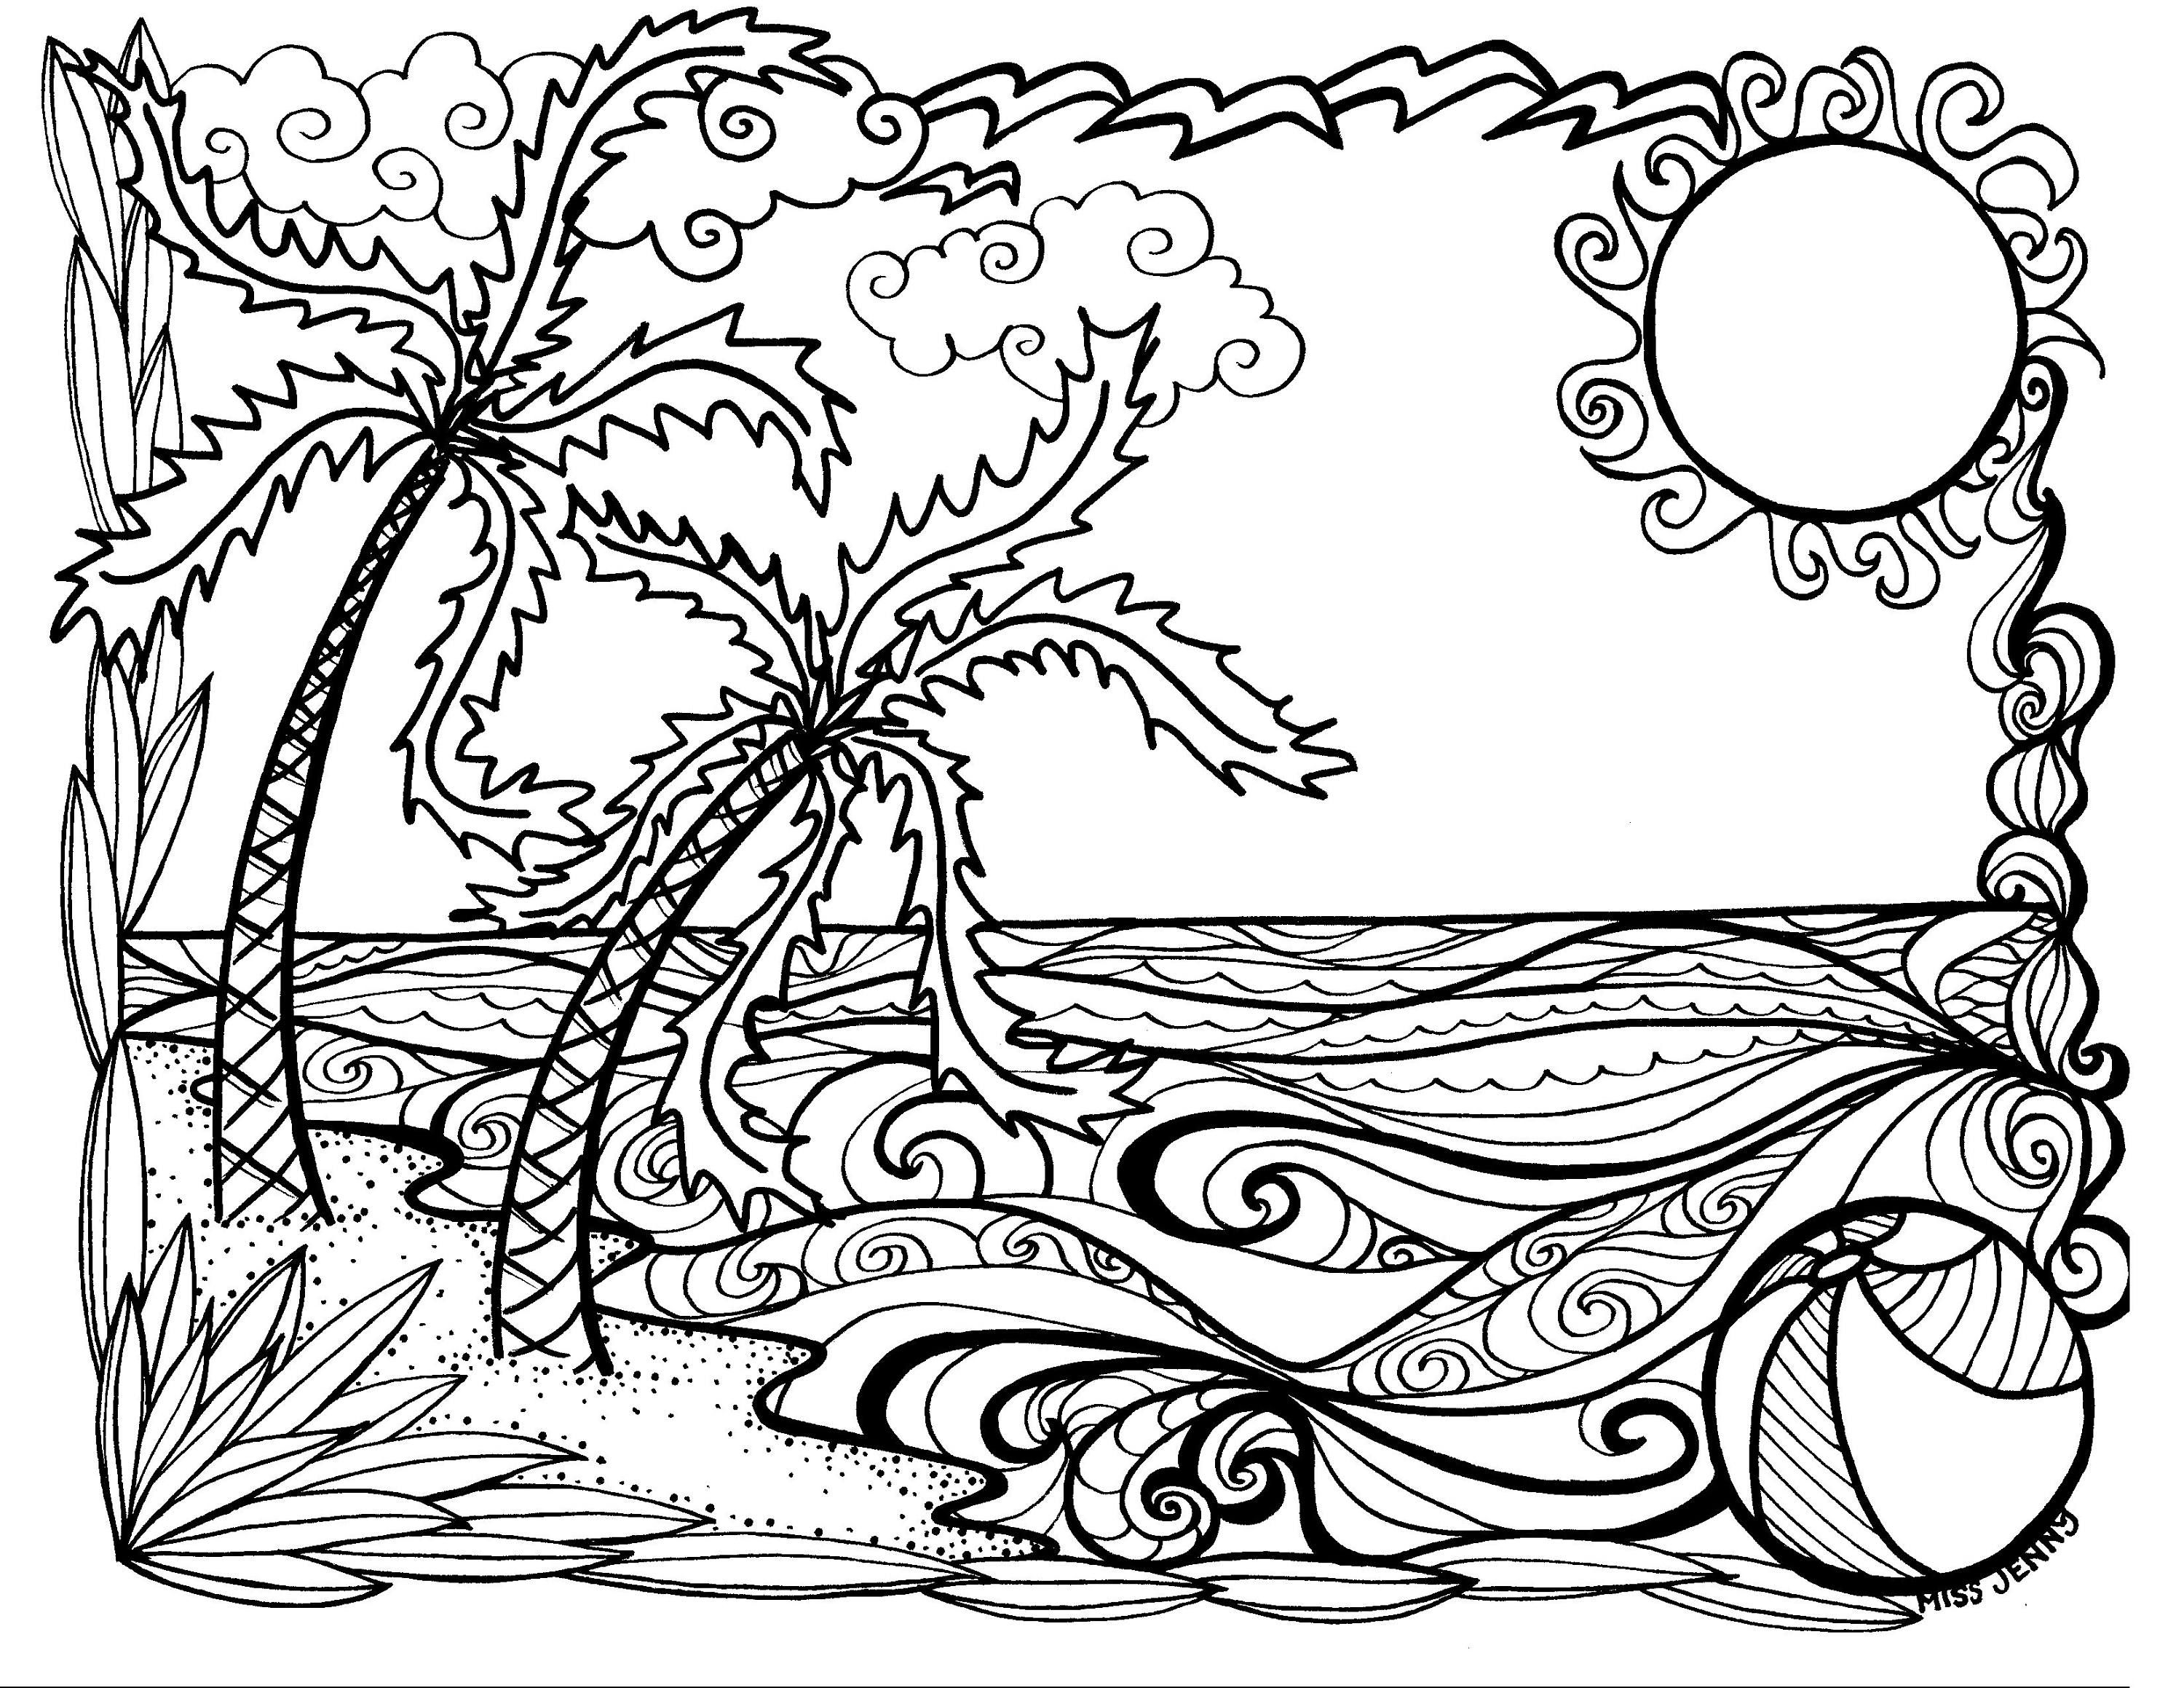 Summer Fun At The Beach Coloring Page By